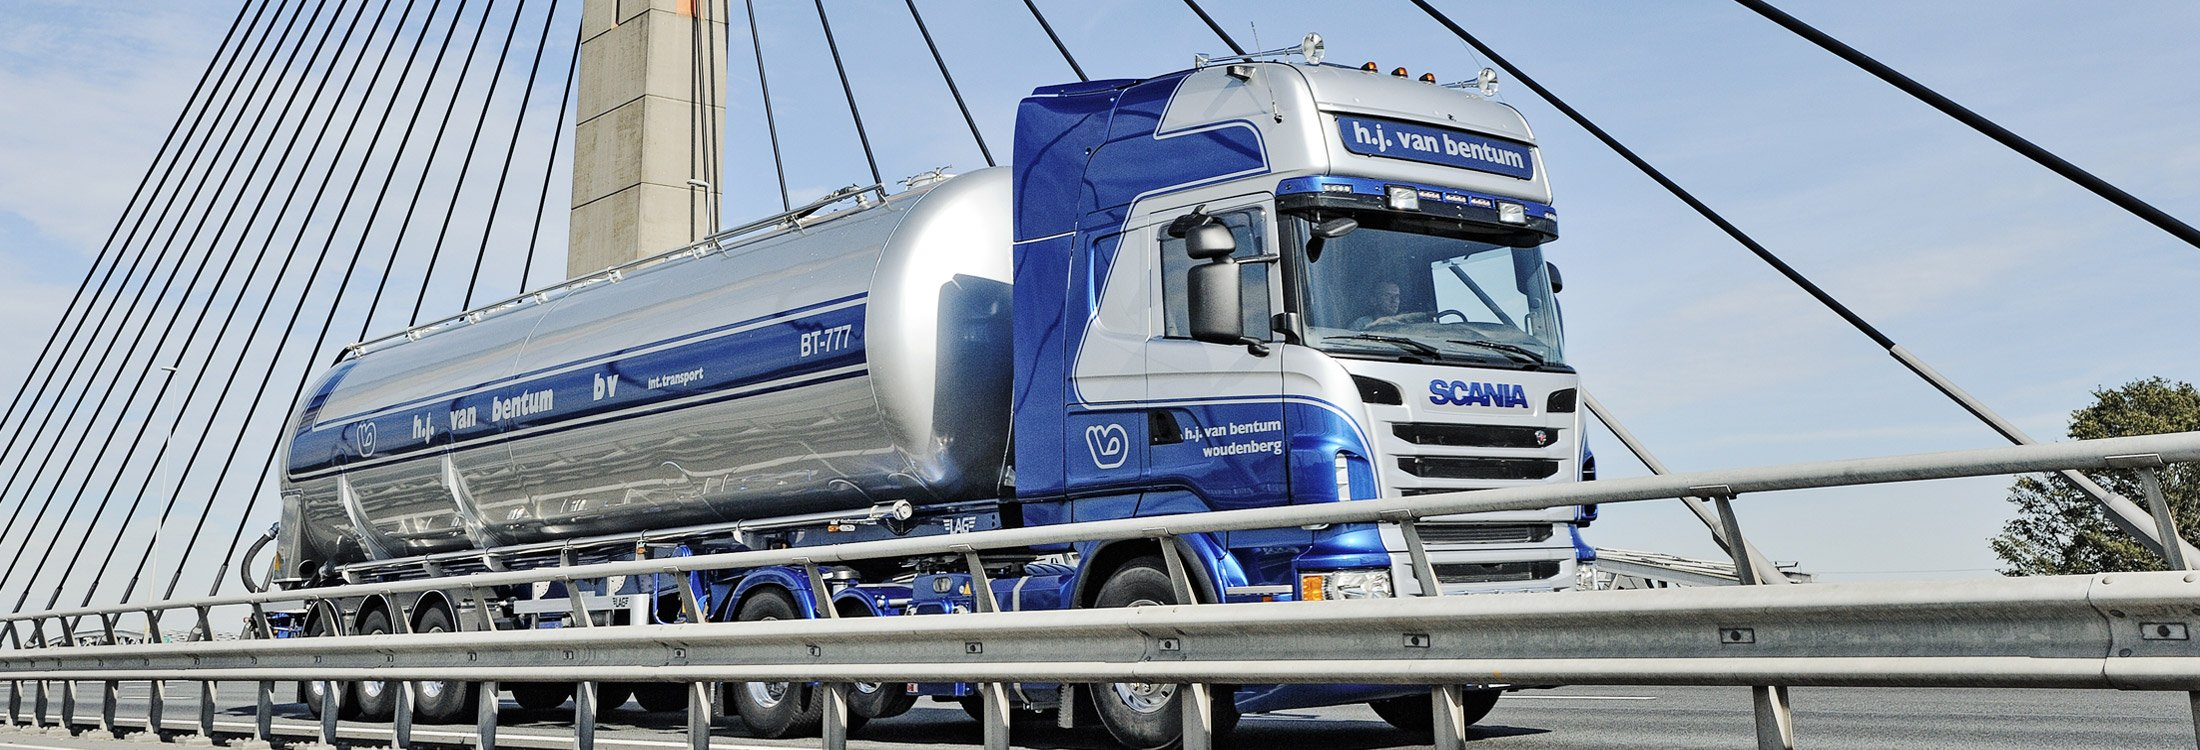 bentum transport bulktransport engeland